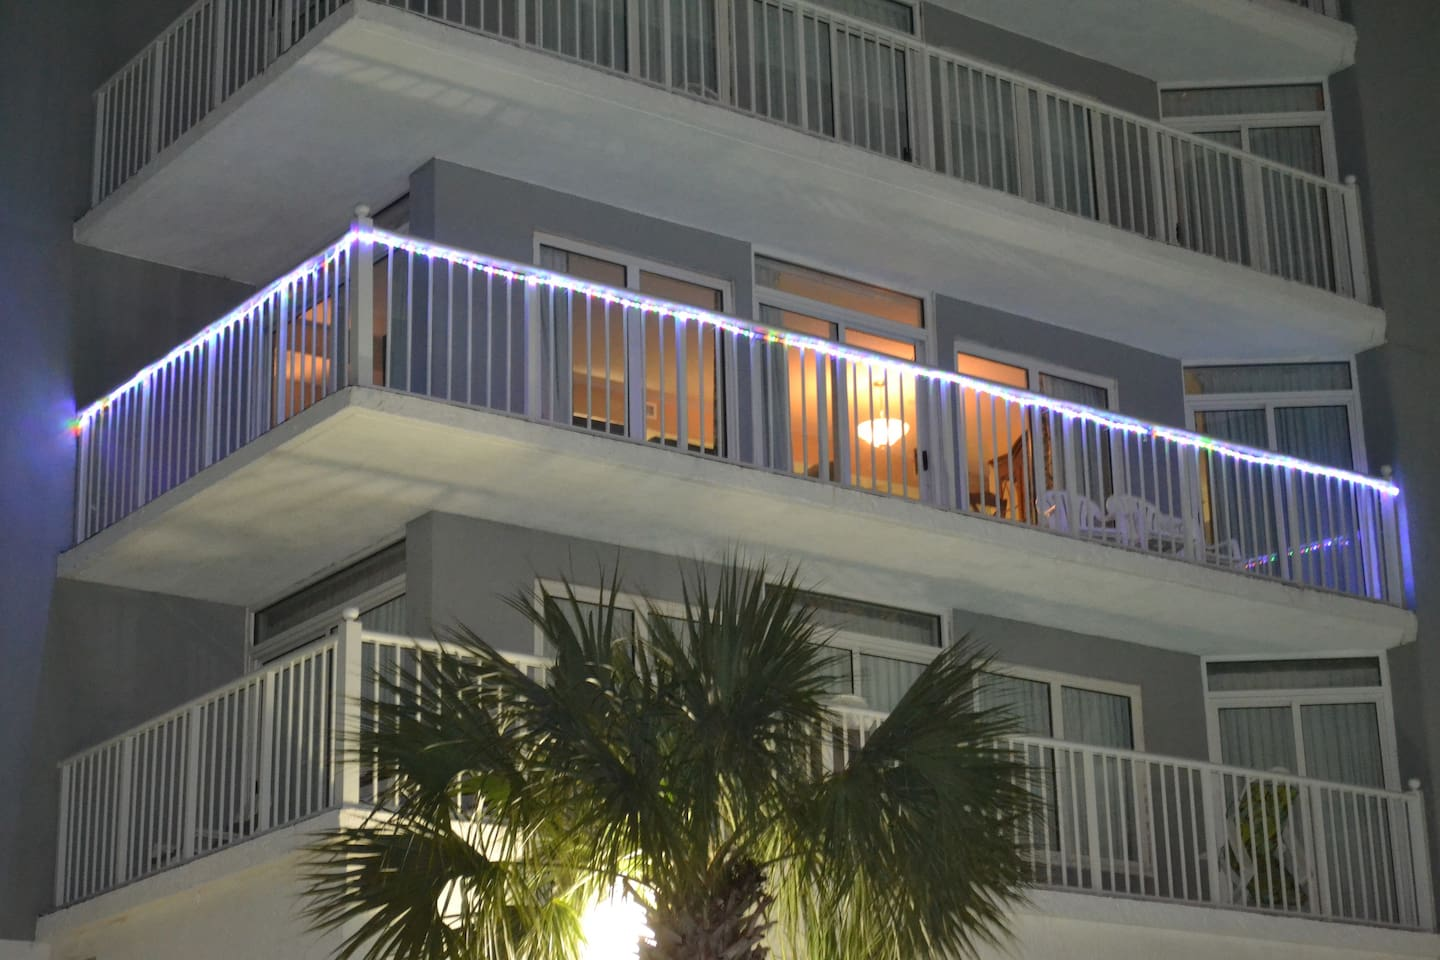 Condo has lots of glass and fifty foot wrap balcony that showcases ocean views and resort amenities.